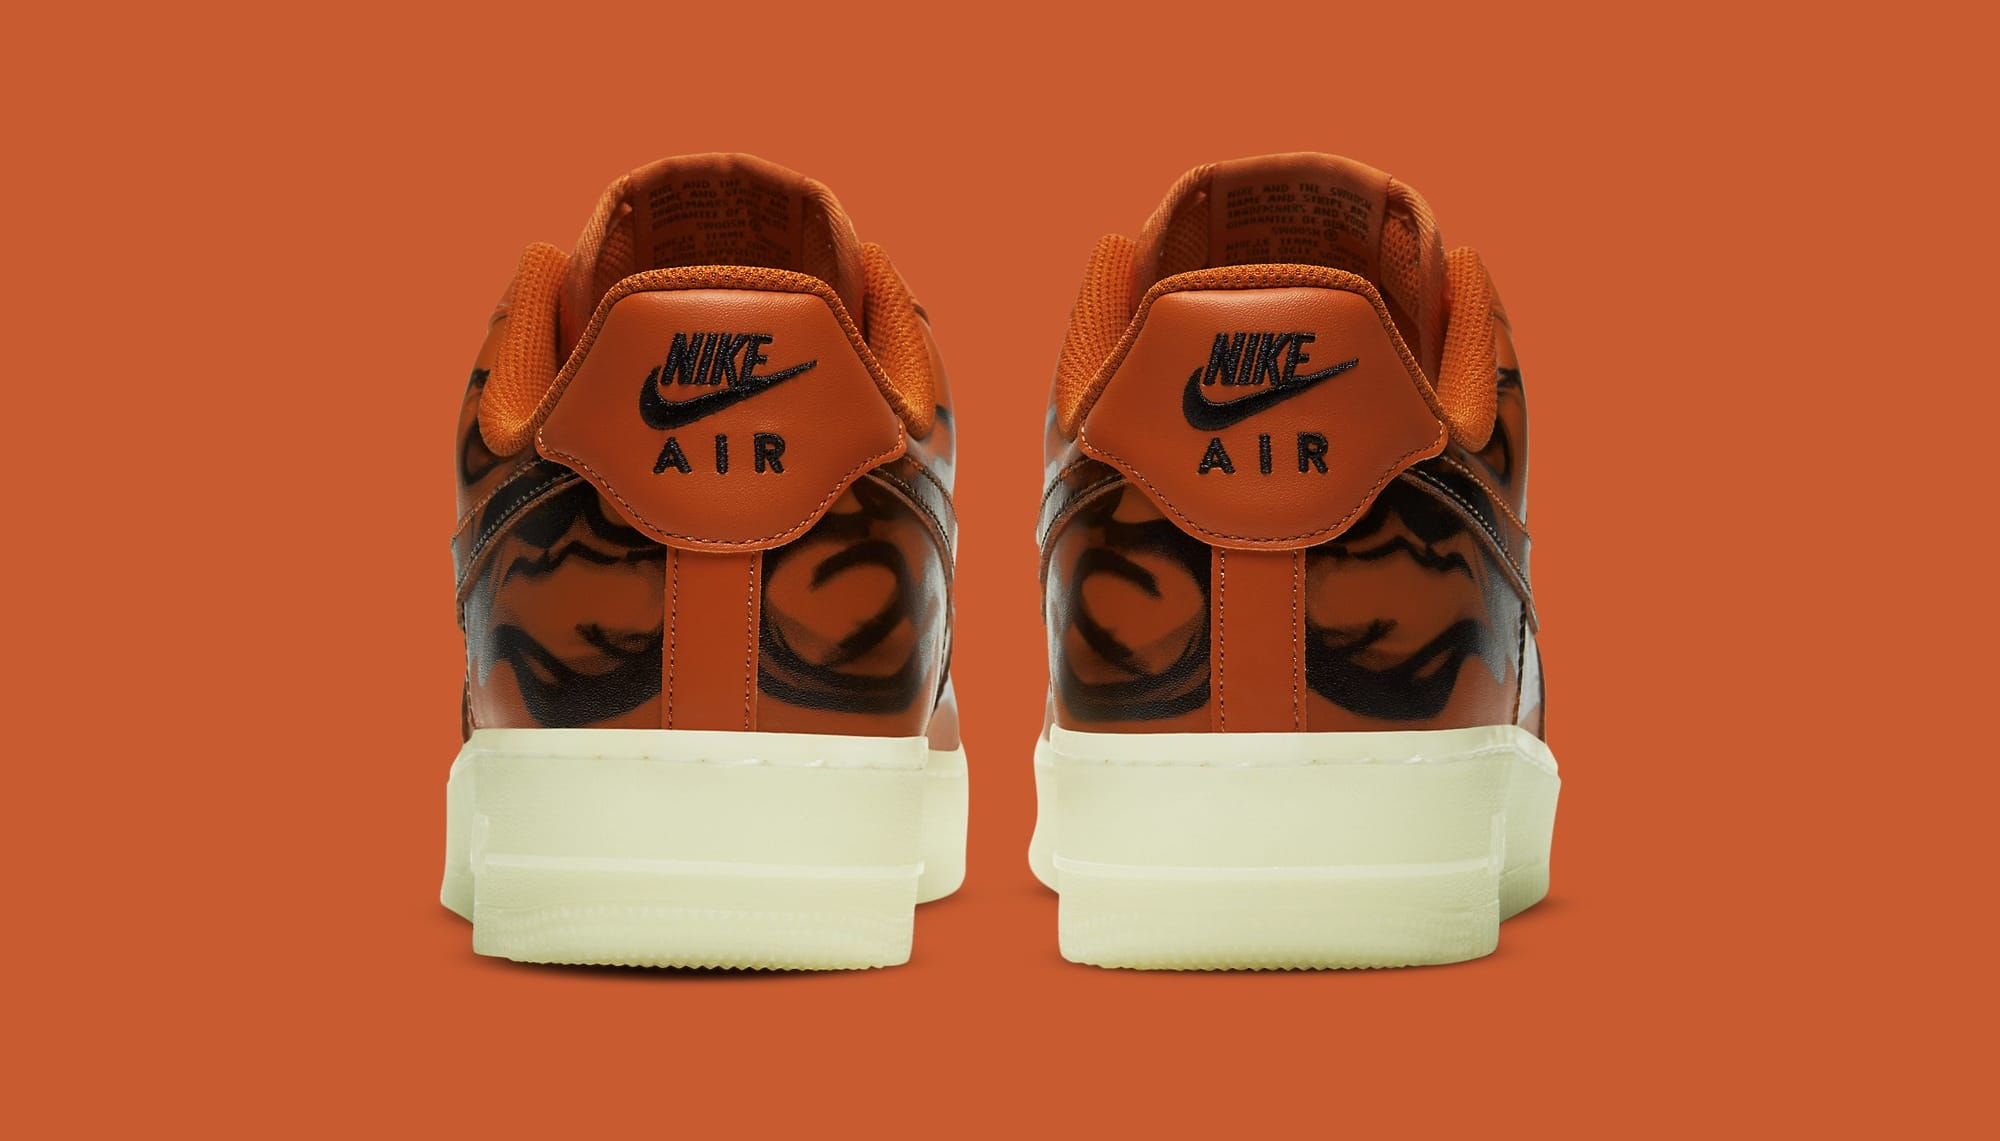 Nike Air Force 1 Low Skeleton 'Orange' CU8067-800 Heel